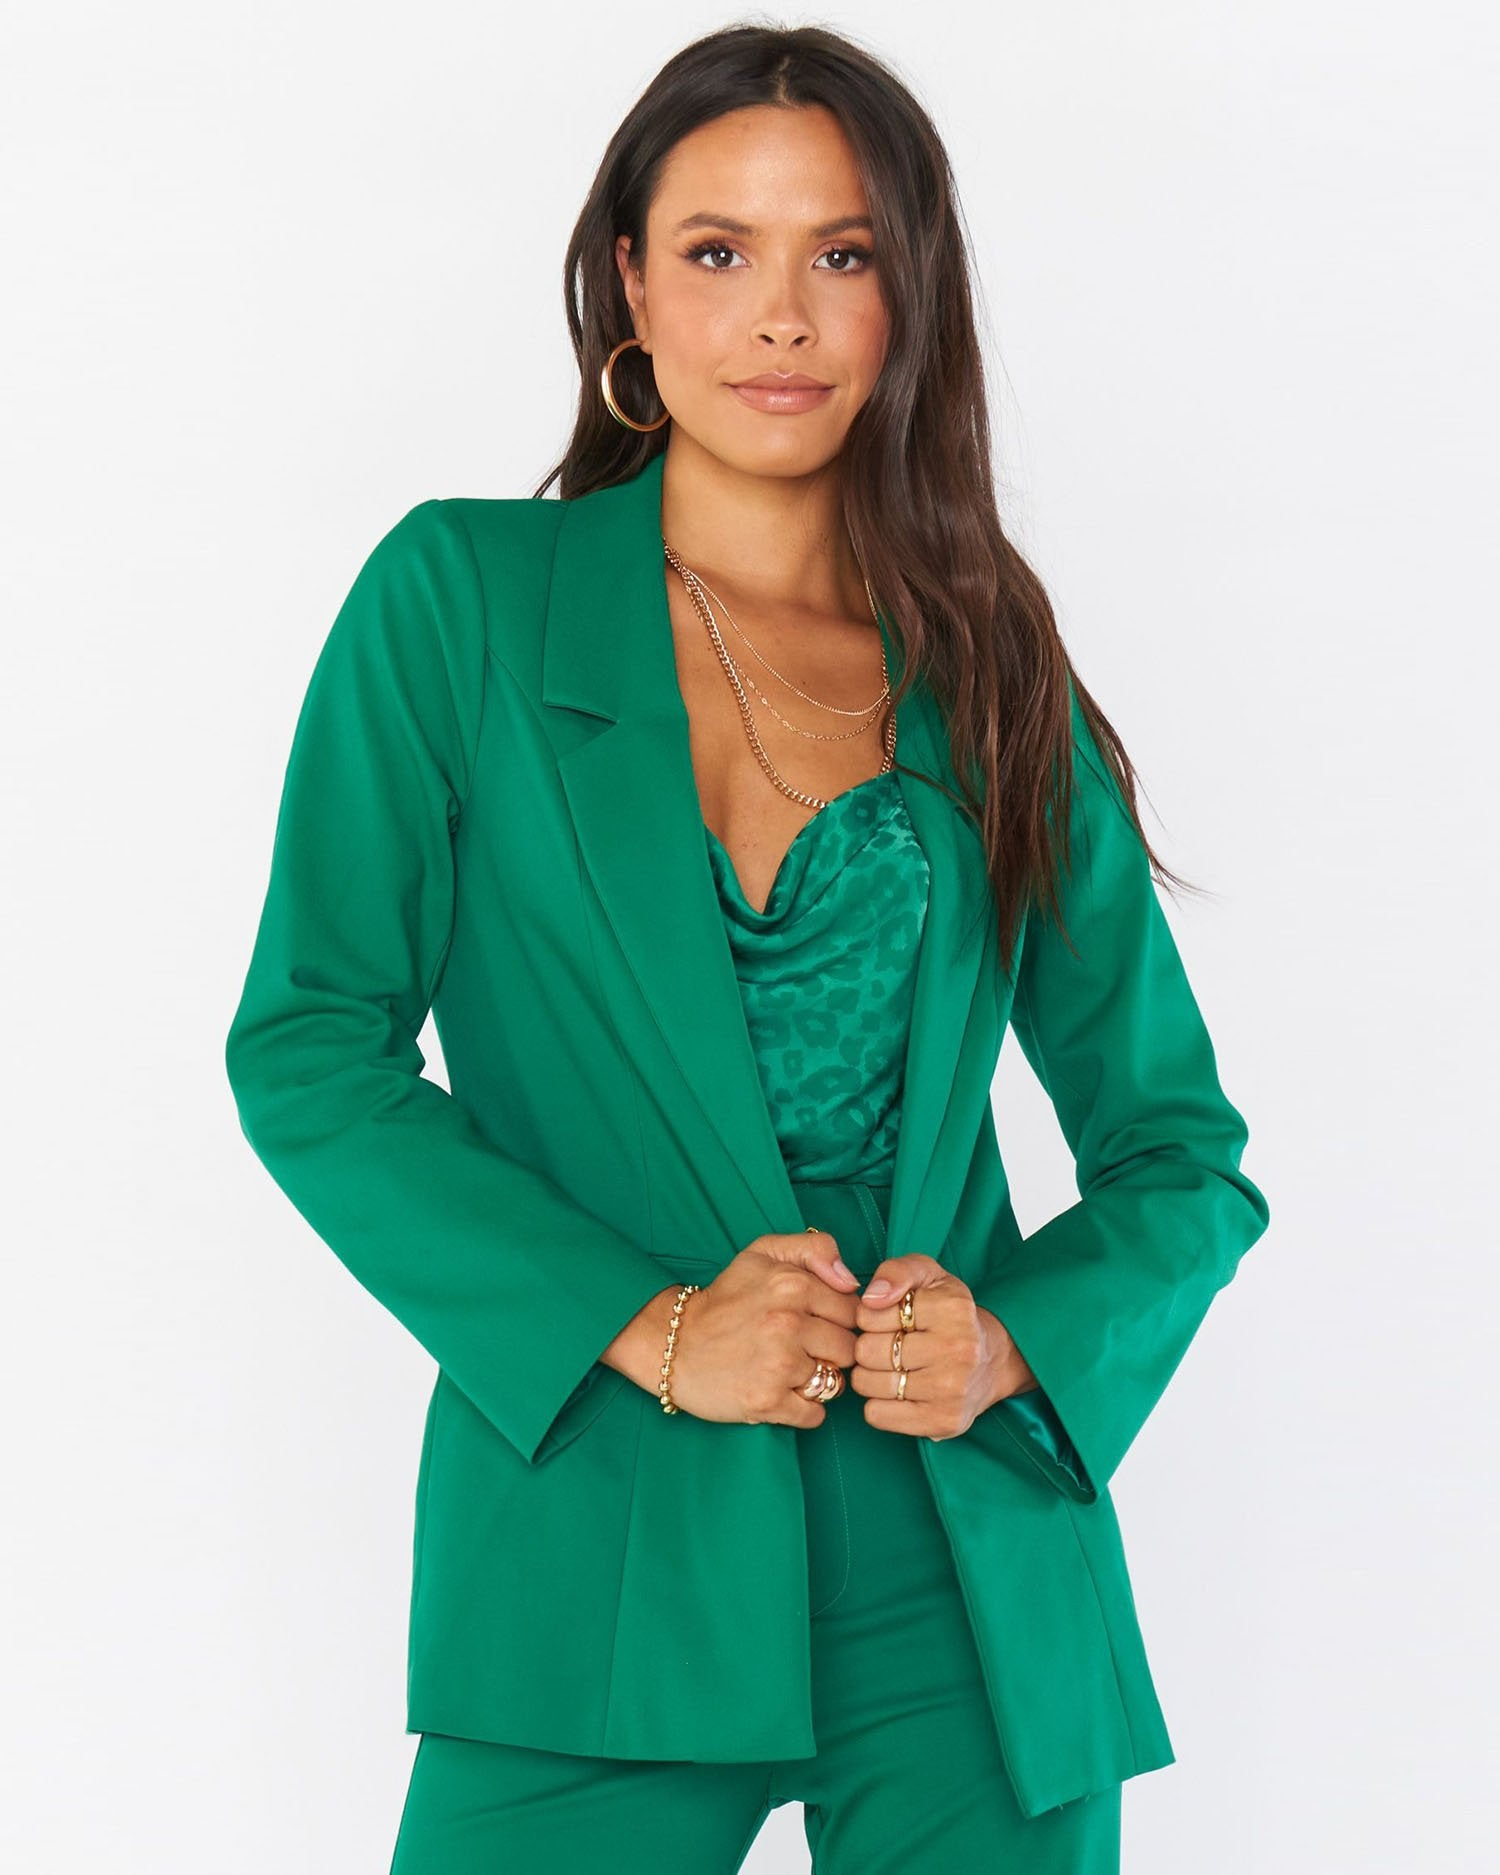 Vintage Coats & Jackets | Retro Coats and Jackets Major Blazer - Green Suiting $188.00 AT vintagedancer.com